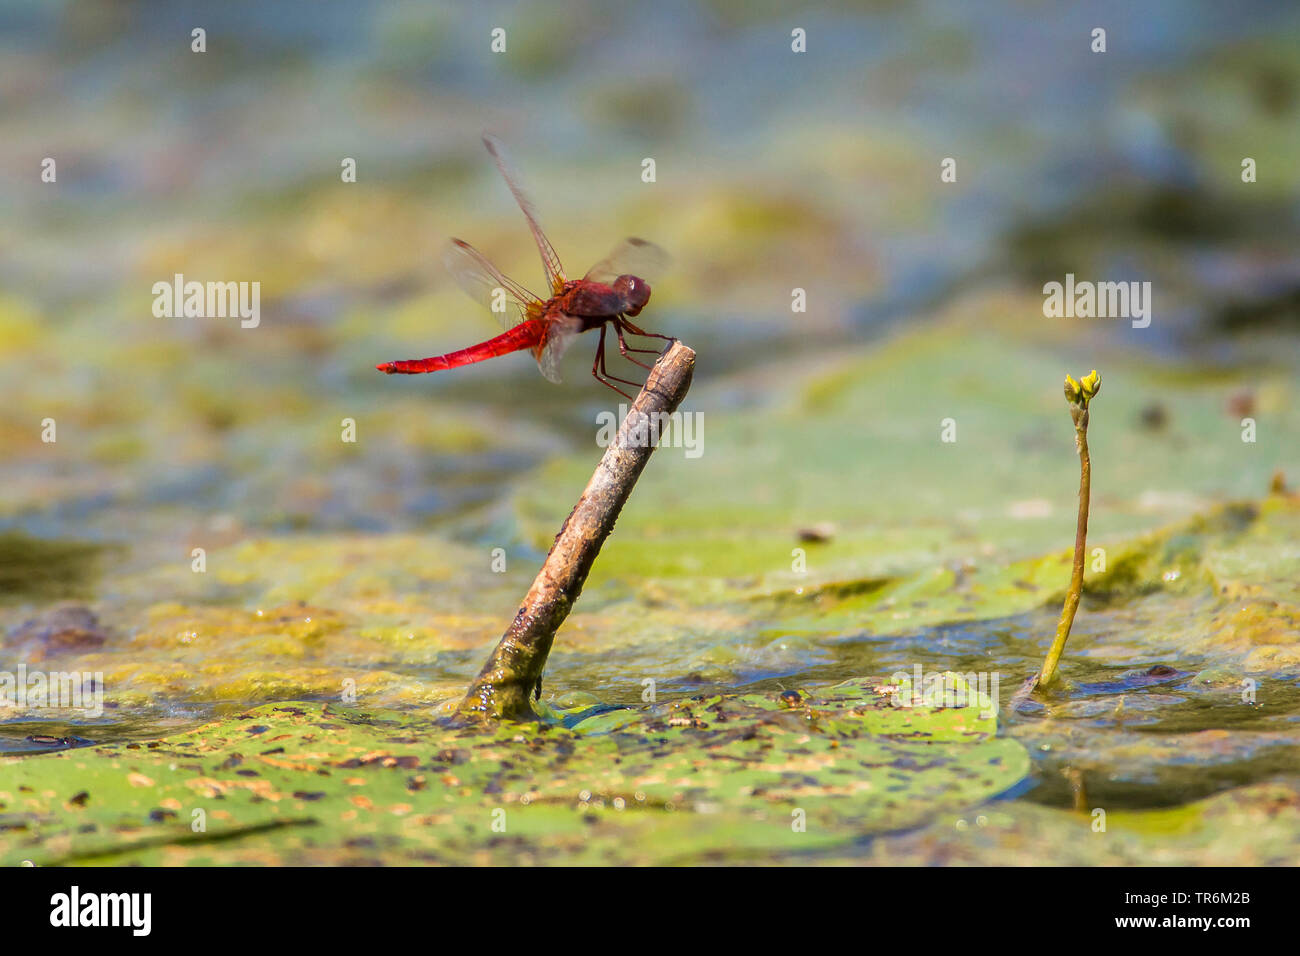 Broad Scarlet, Common Scarlet-darter, Scarlet Darter, Scarlet Dragonfly (Crocothemis erythraea, Croccothemis erythraea), male landing on a lookout in the water, Germany, Bavaria, Niederbayern, Lower Bavaria Stock Photo